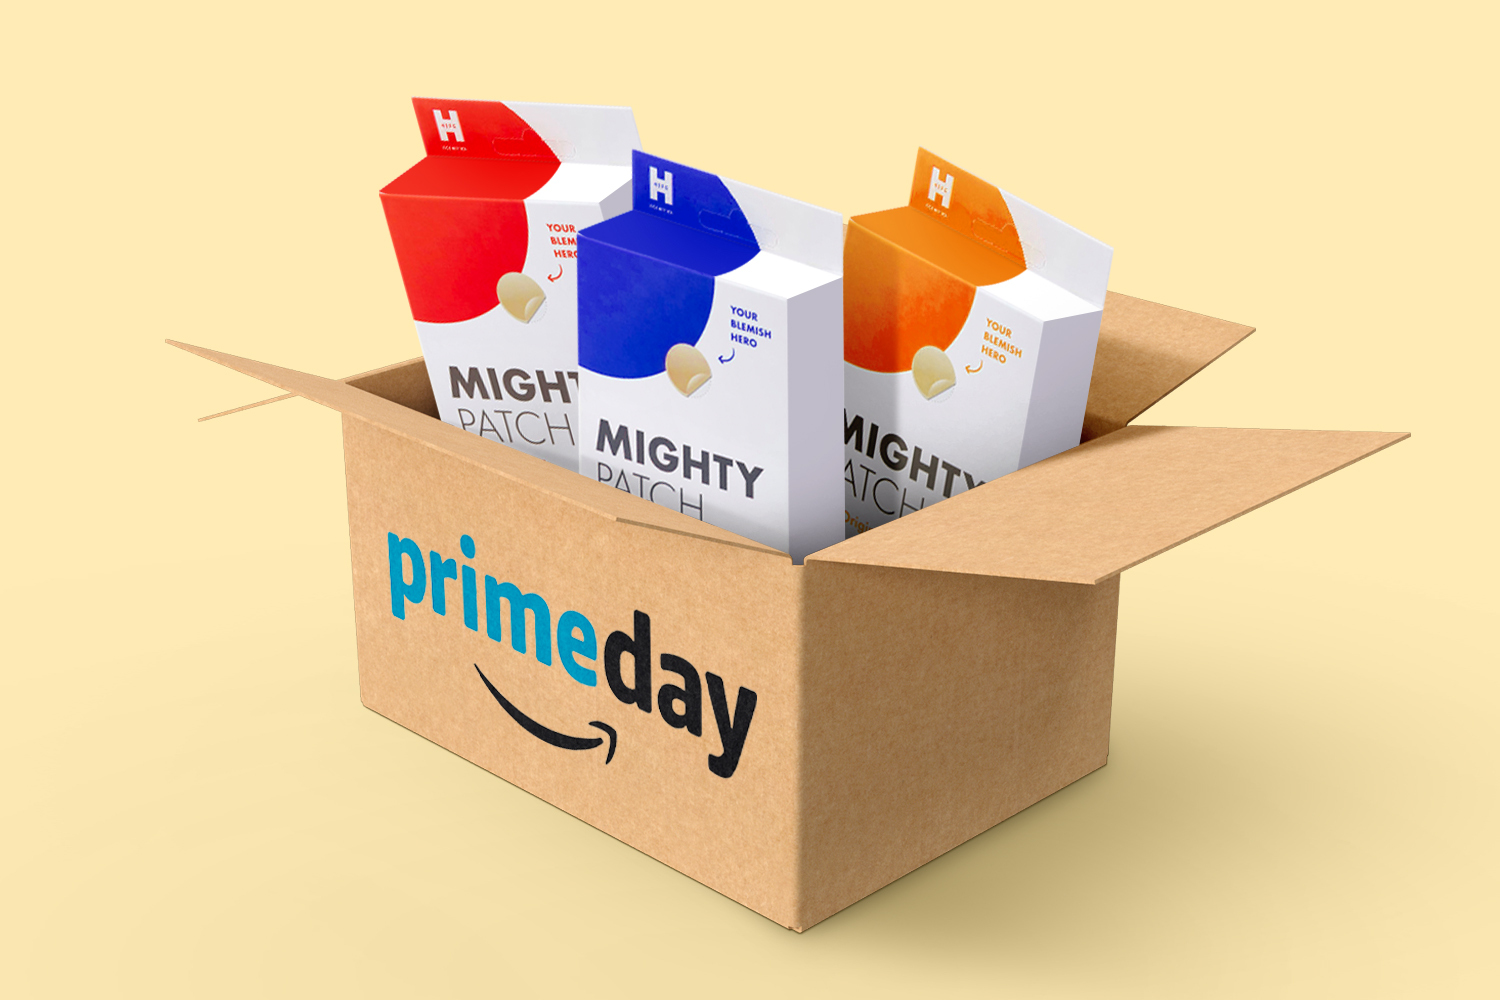 Amazon Prime Day Returns to the Summer